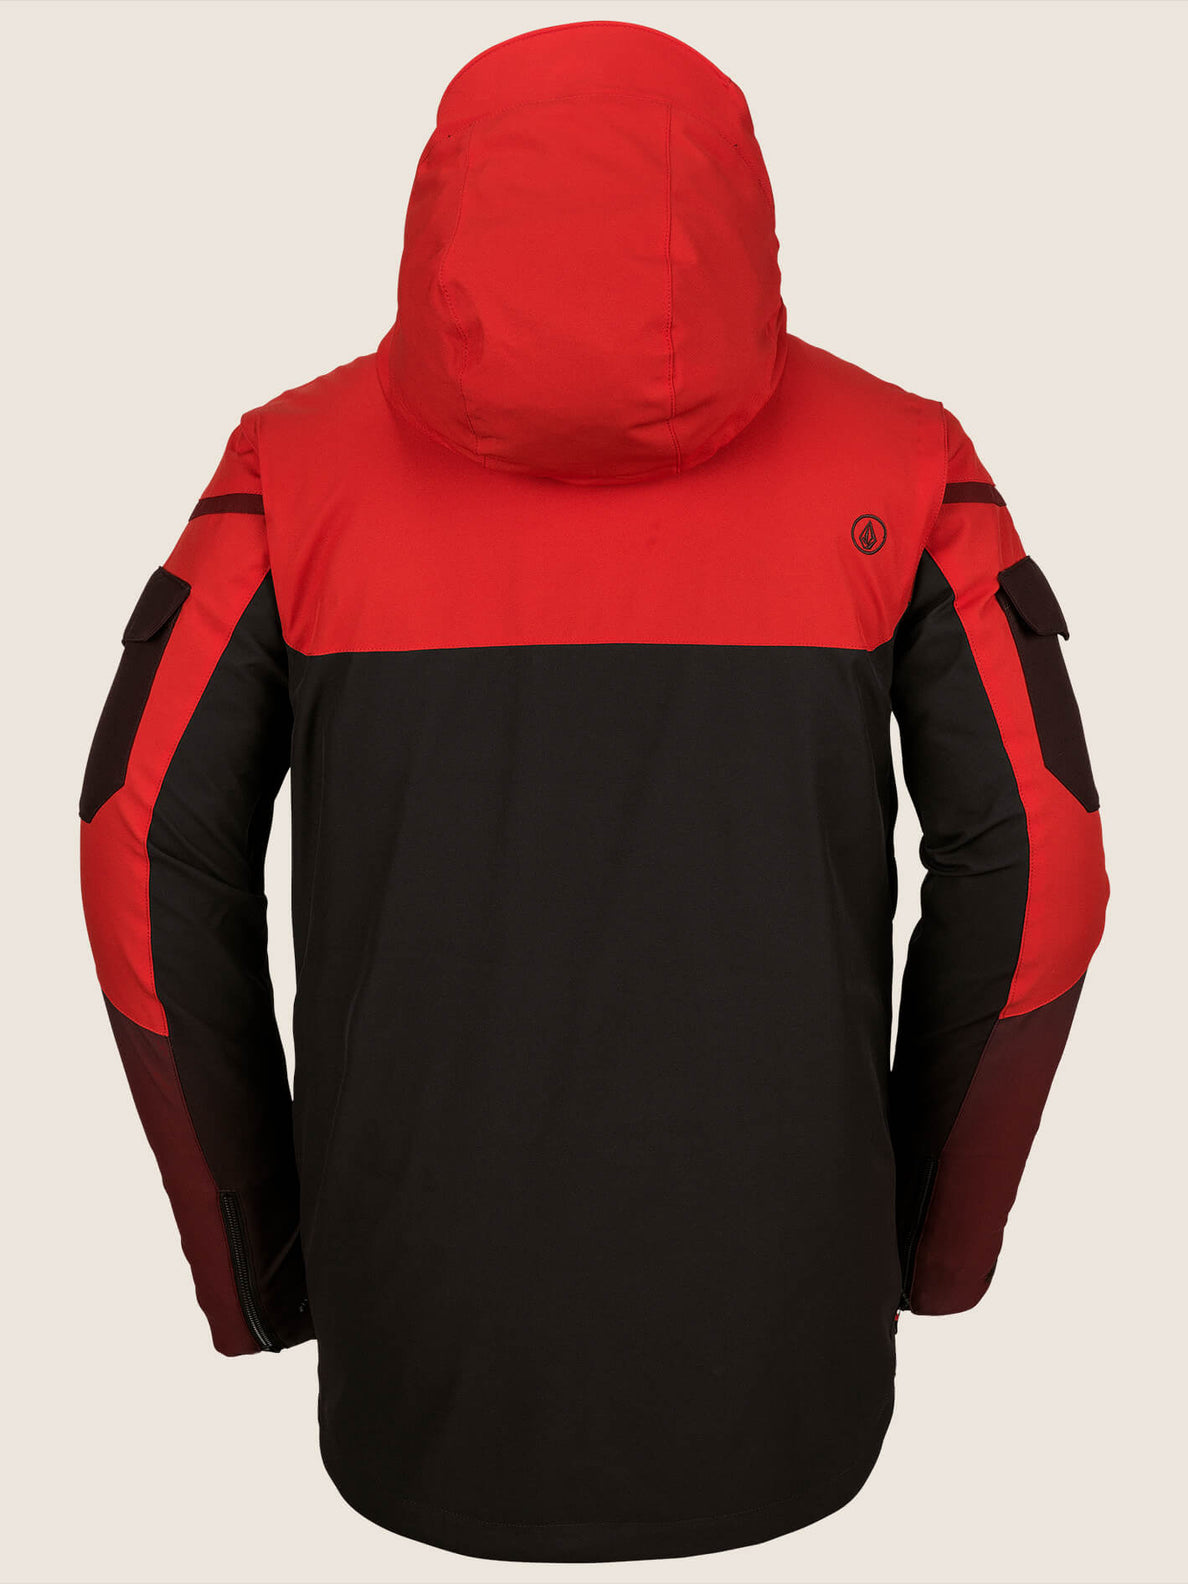 Utility Jacket In Black Red, Back View